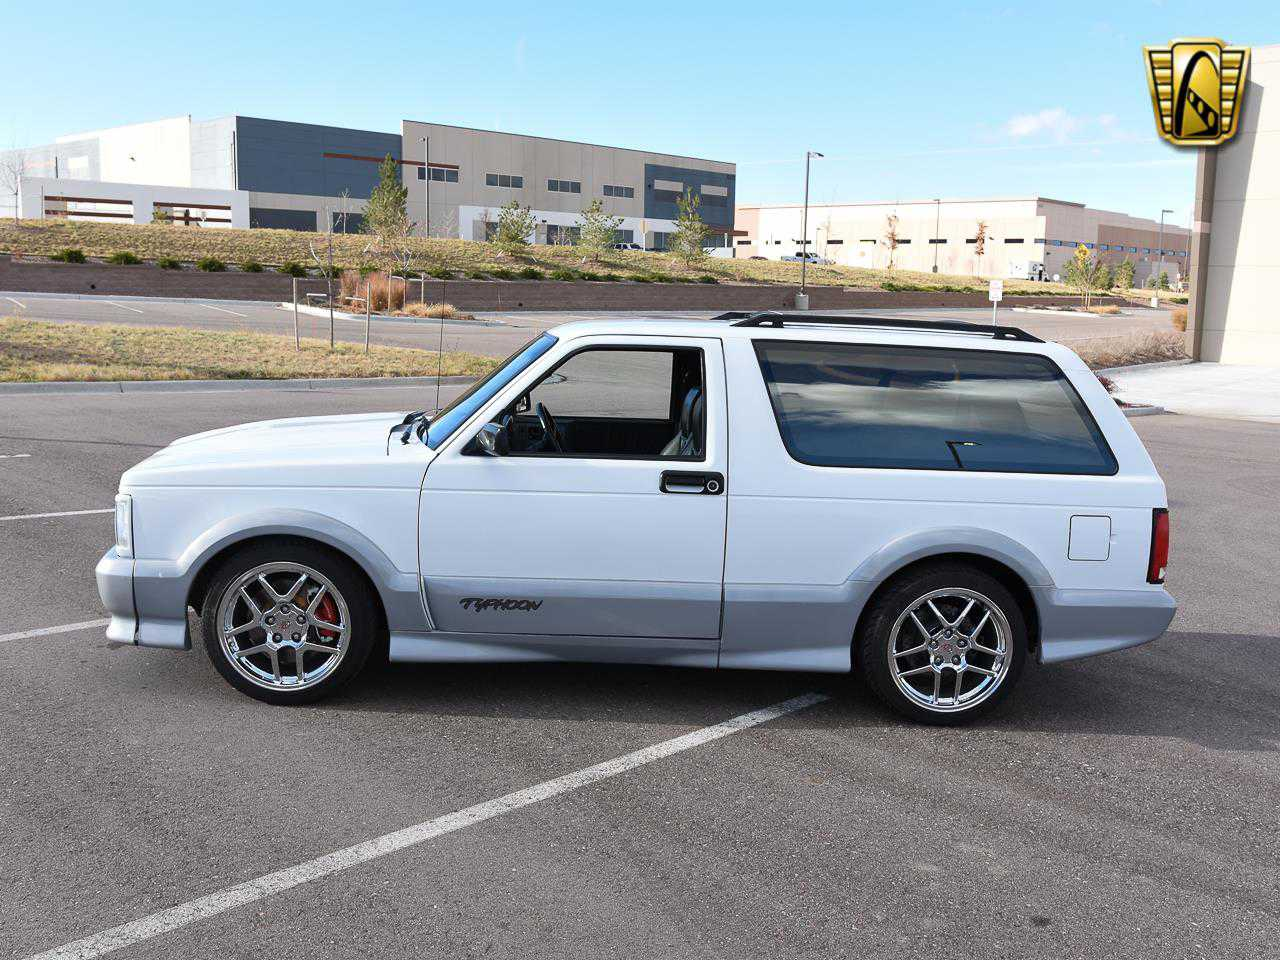 1992 GMC Typhoon for sale in O Fallon, IL | 1GDCT18Z3N0811517